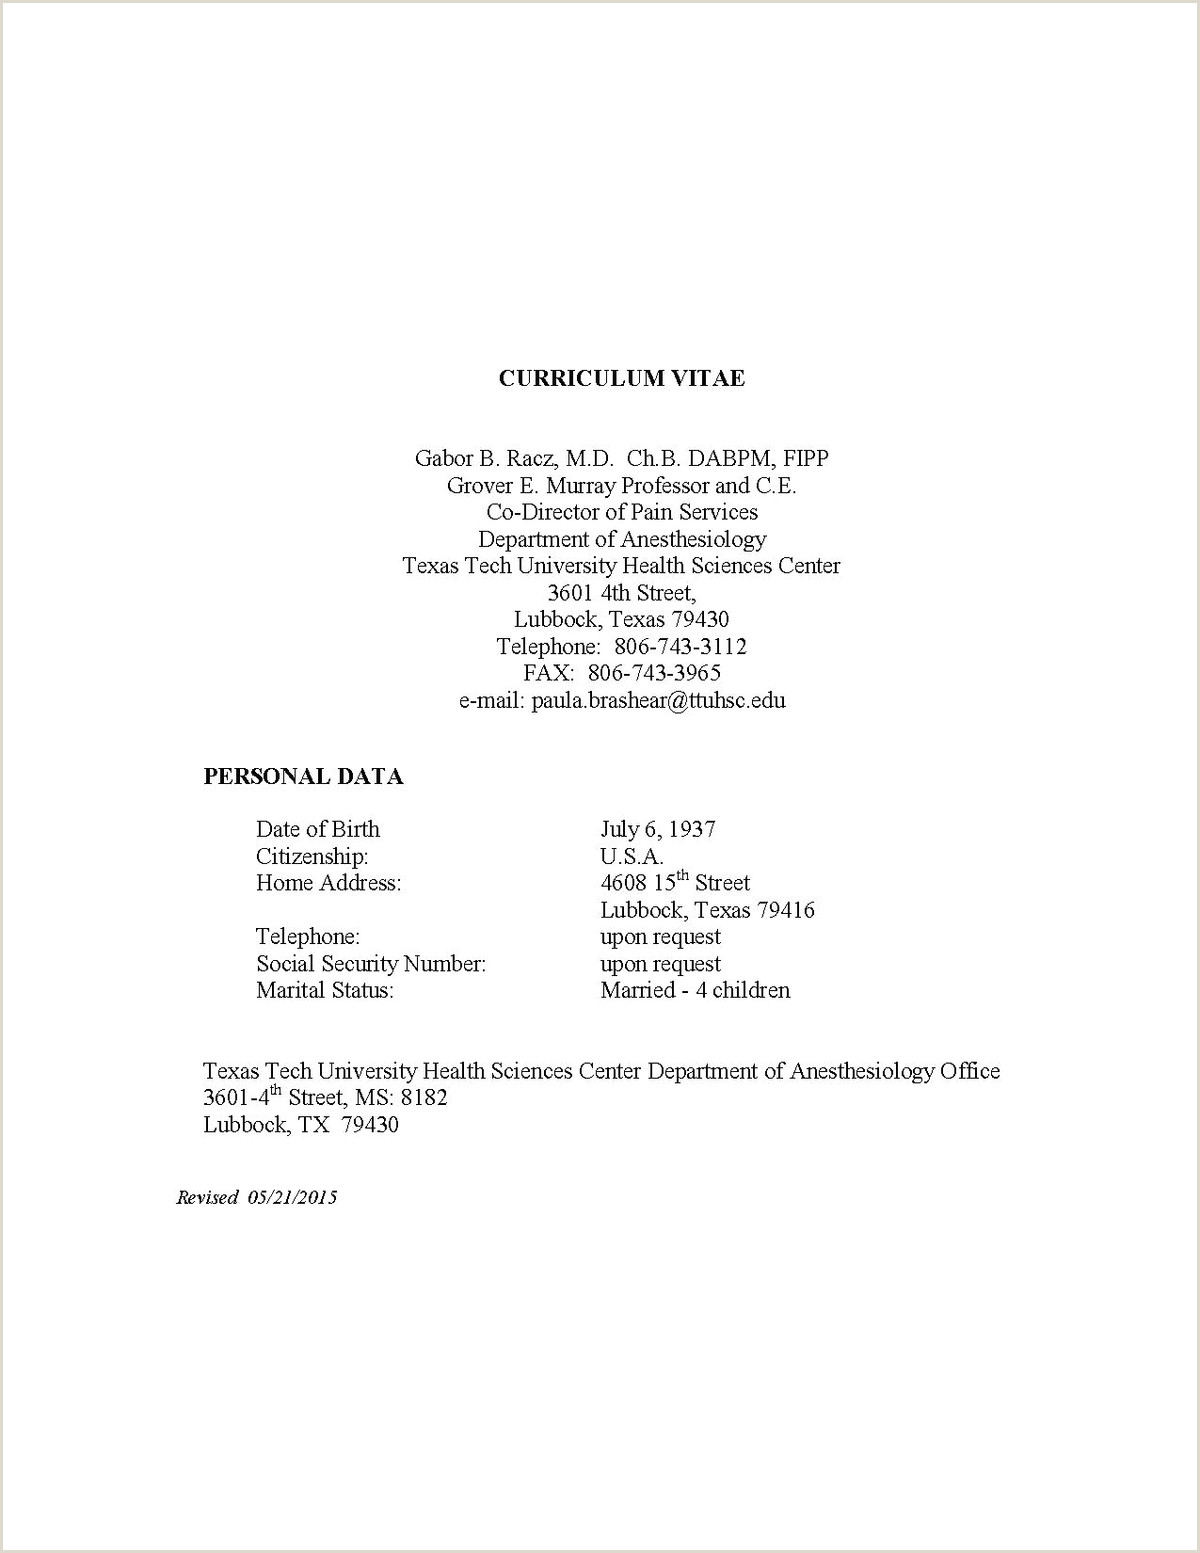 One Page Professional Cv format Curriculum Vitae